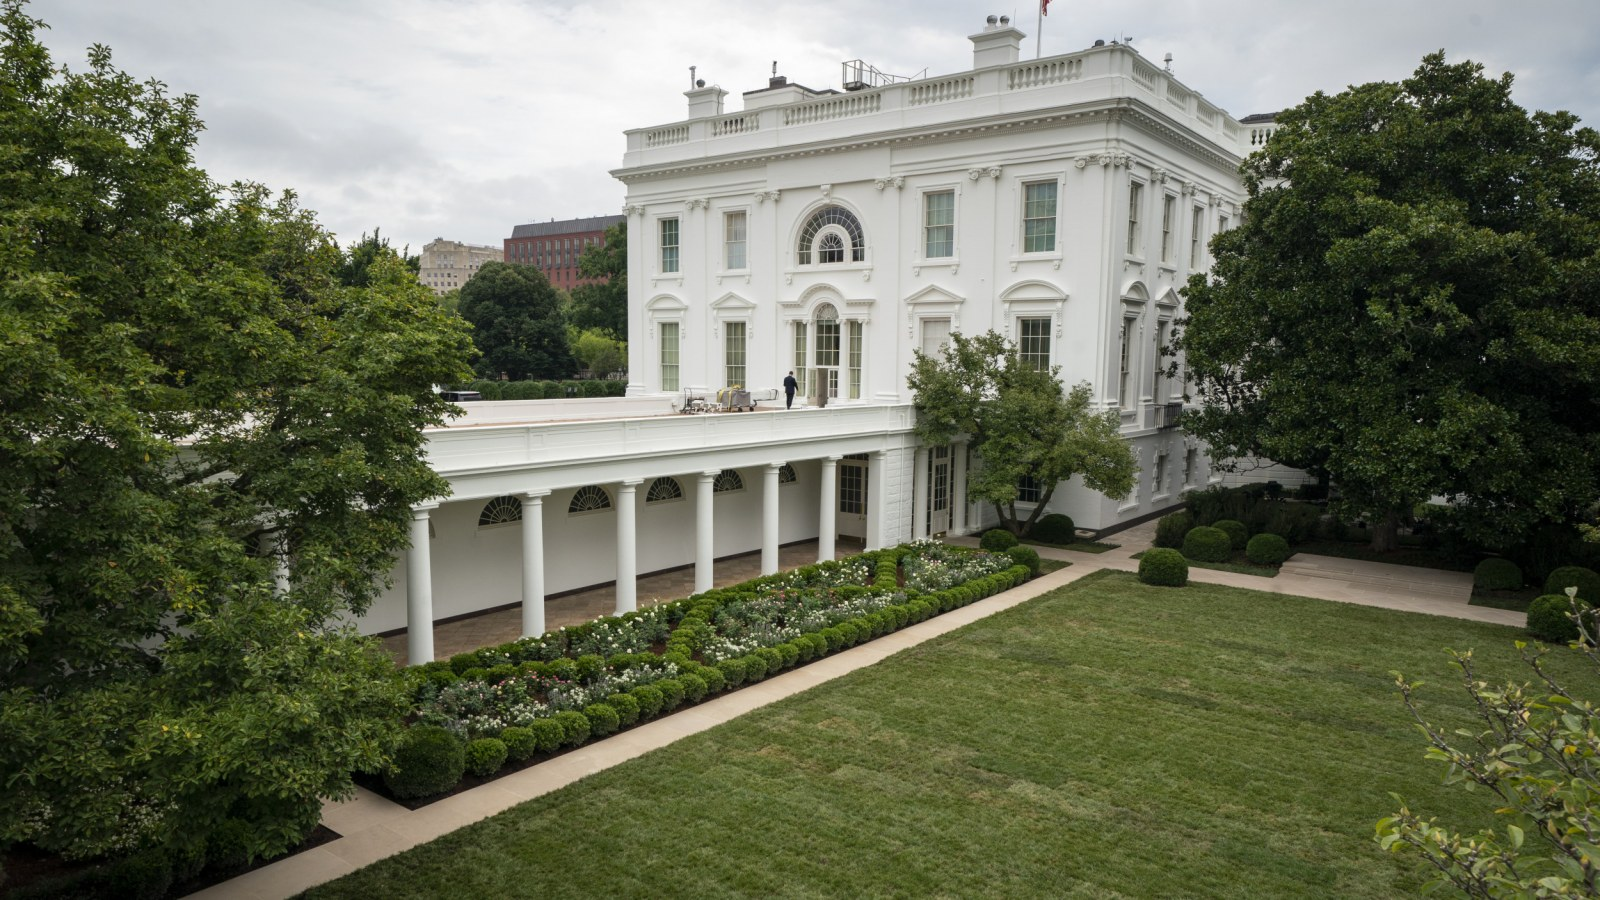 Rose Garden S Crab Apple Trees Will Reportedly Be Planted Elsewhere After Melania Trump S Renovation